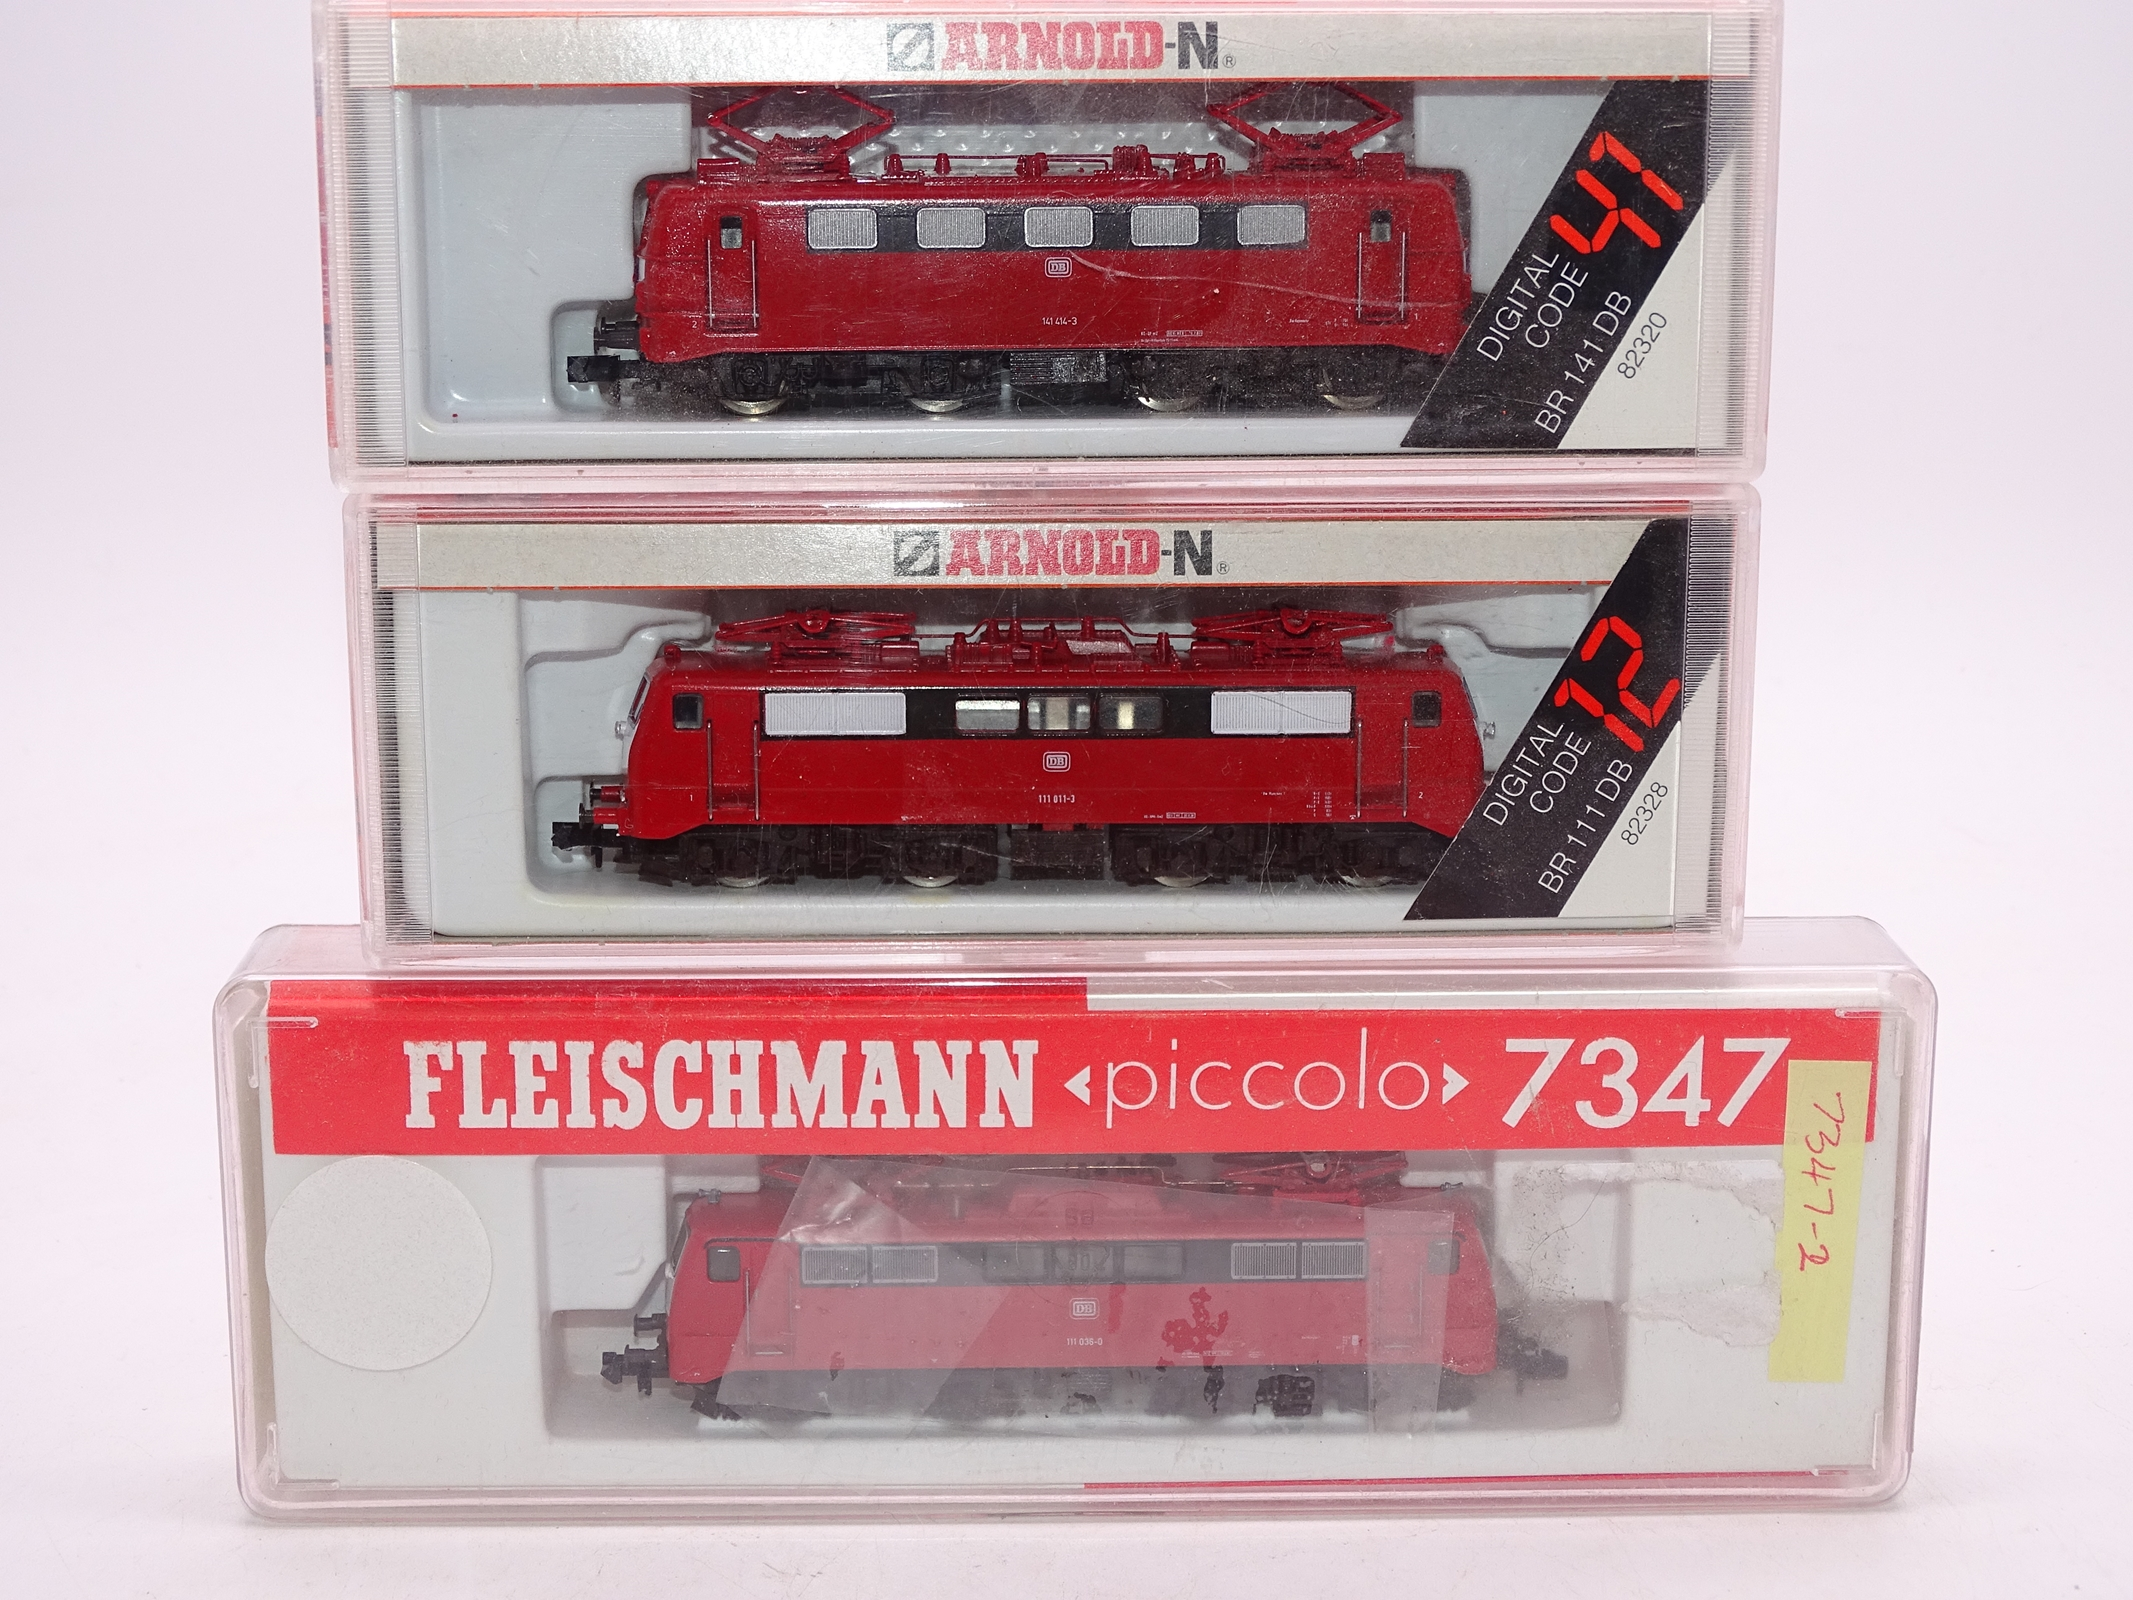 Lot 20 - N Gauge - A group of 3 German Outline electric locomotives by Arnold and Fleischmann as lotted G-